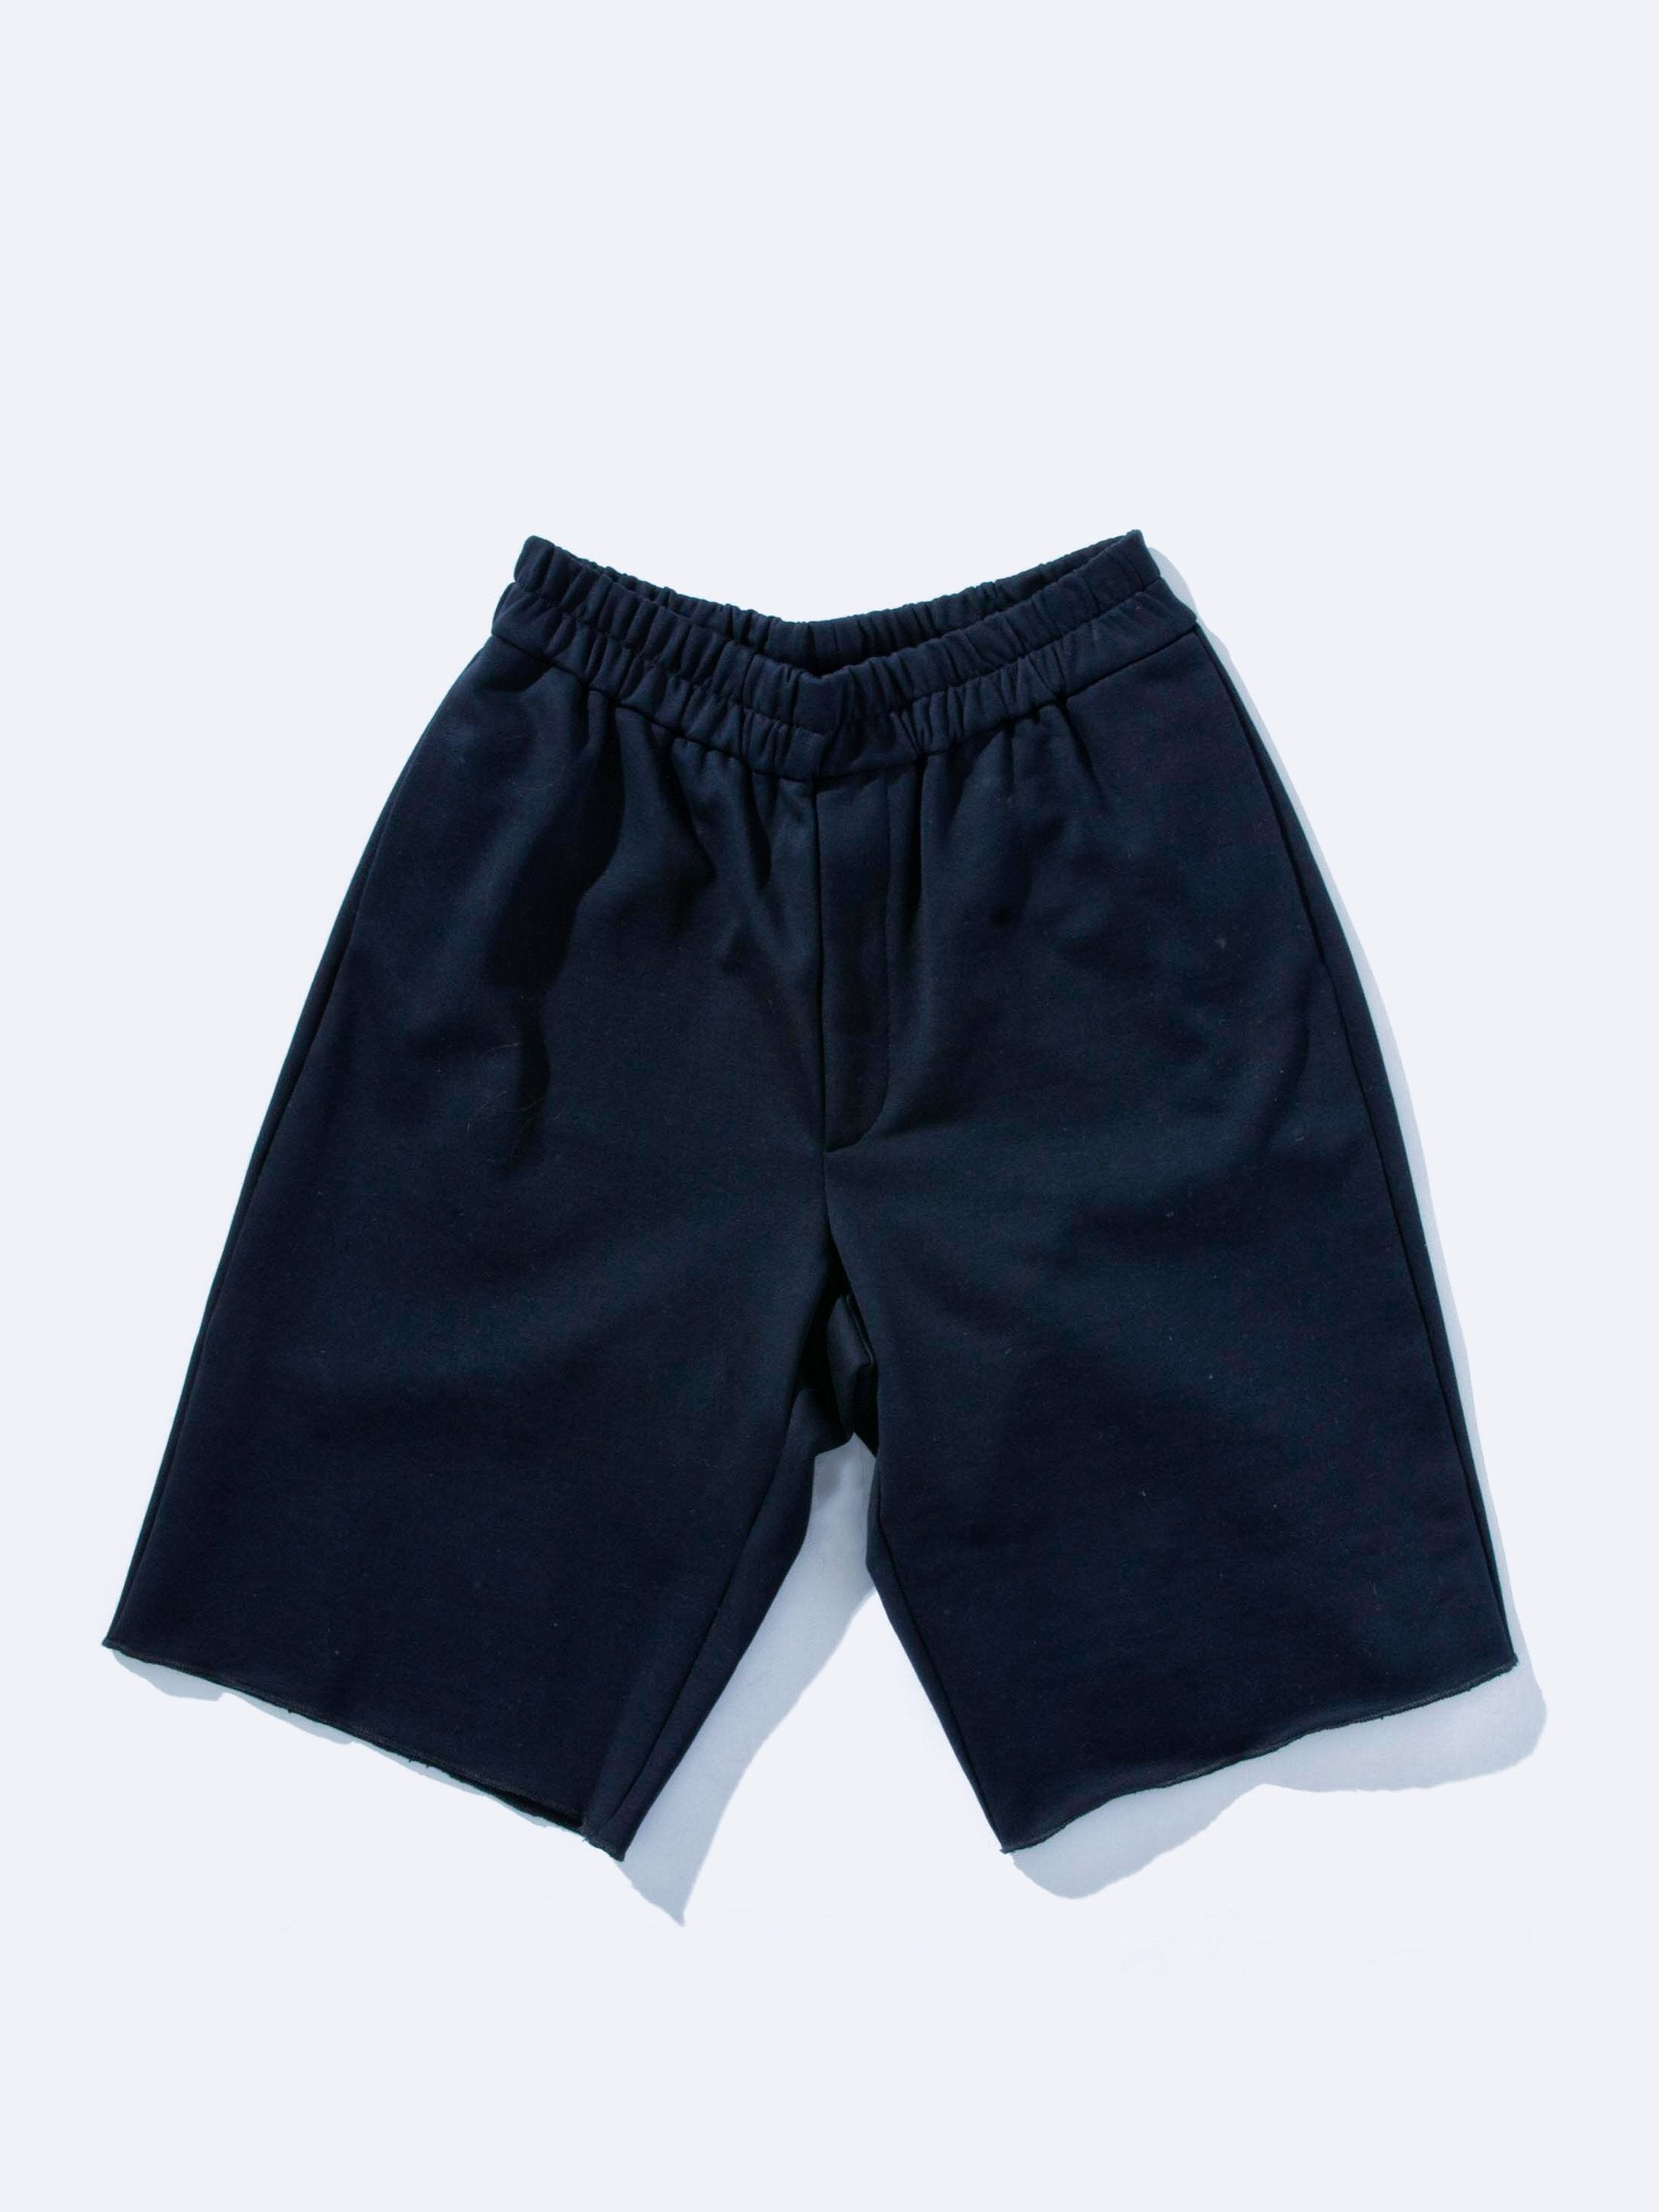 Black Jersey Knitted Short Pant 1